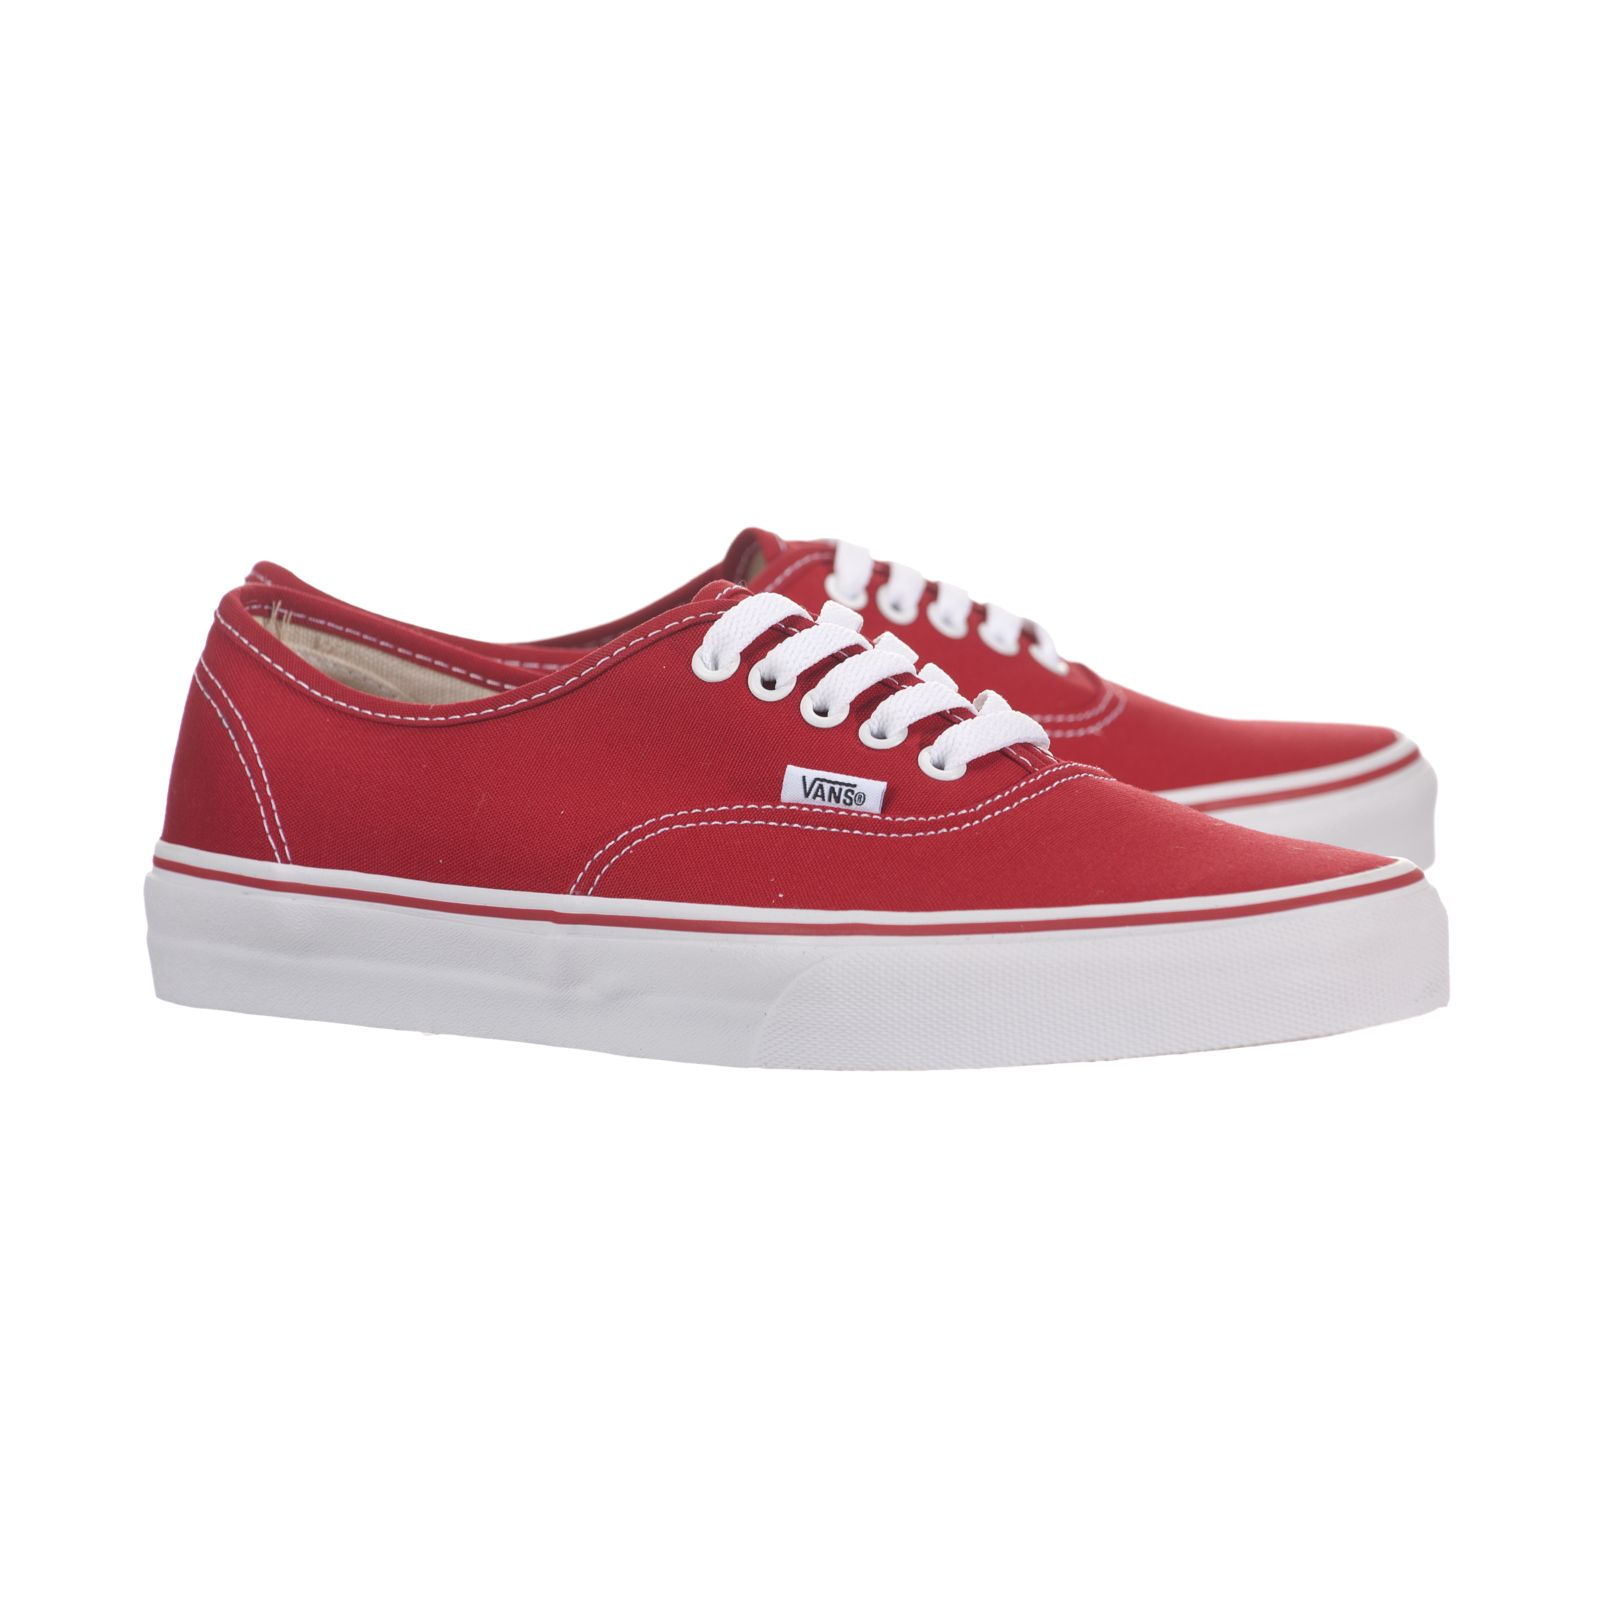 37b31669c8 VANS Authentic Red Canvas 0ee3red Skate Shoes SNEAKERS Mens Womens 8 ...